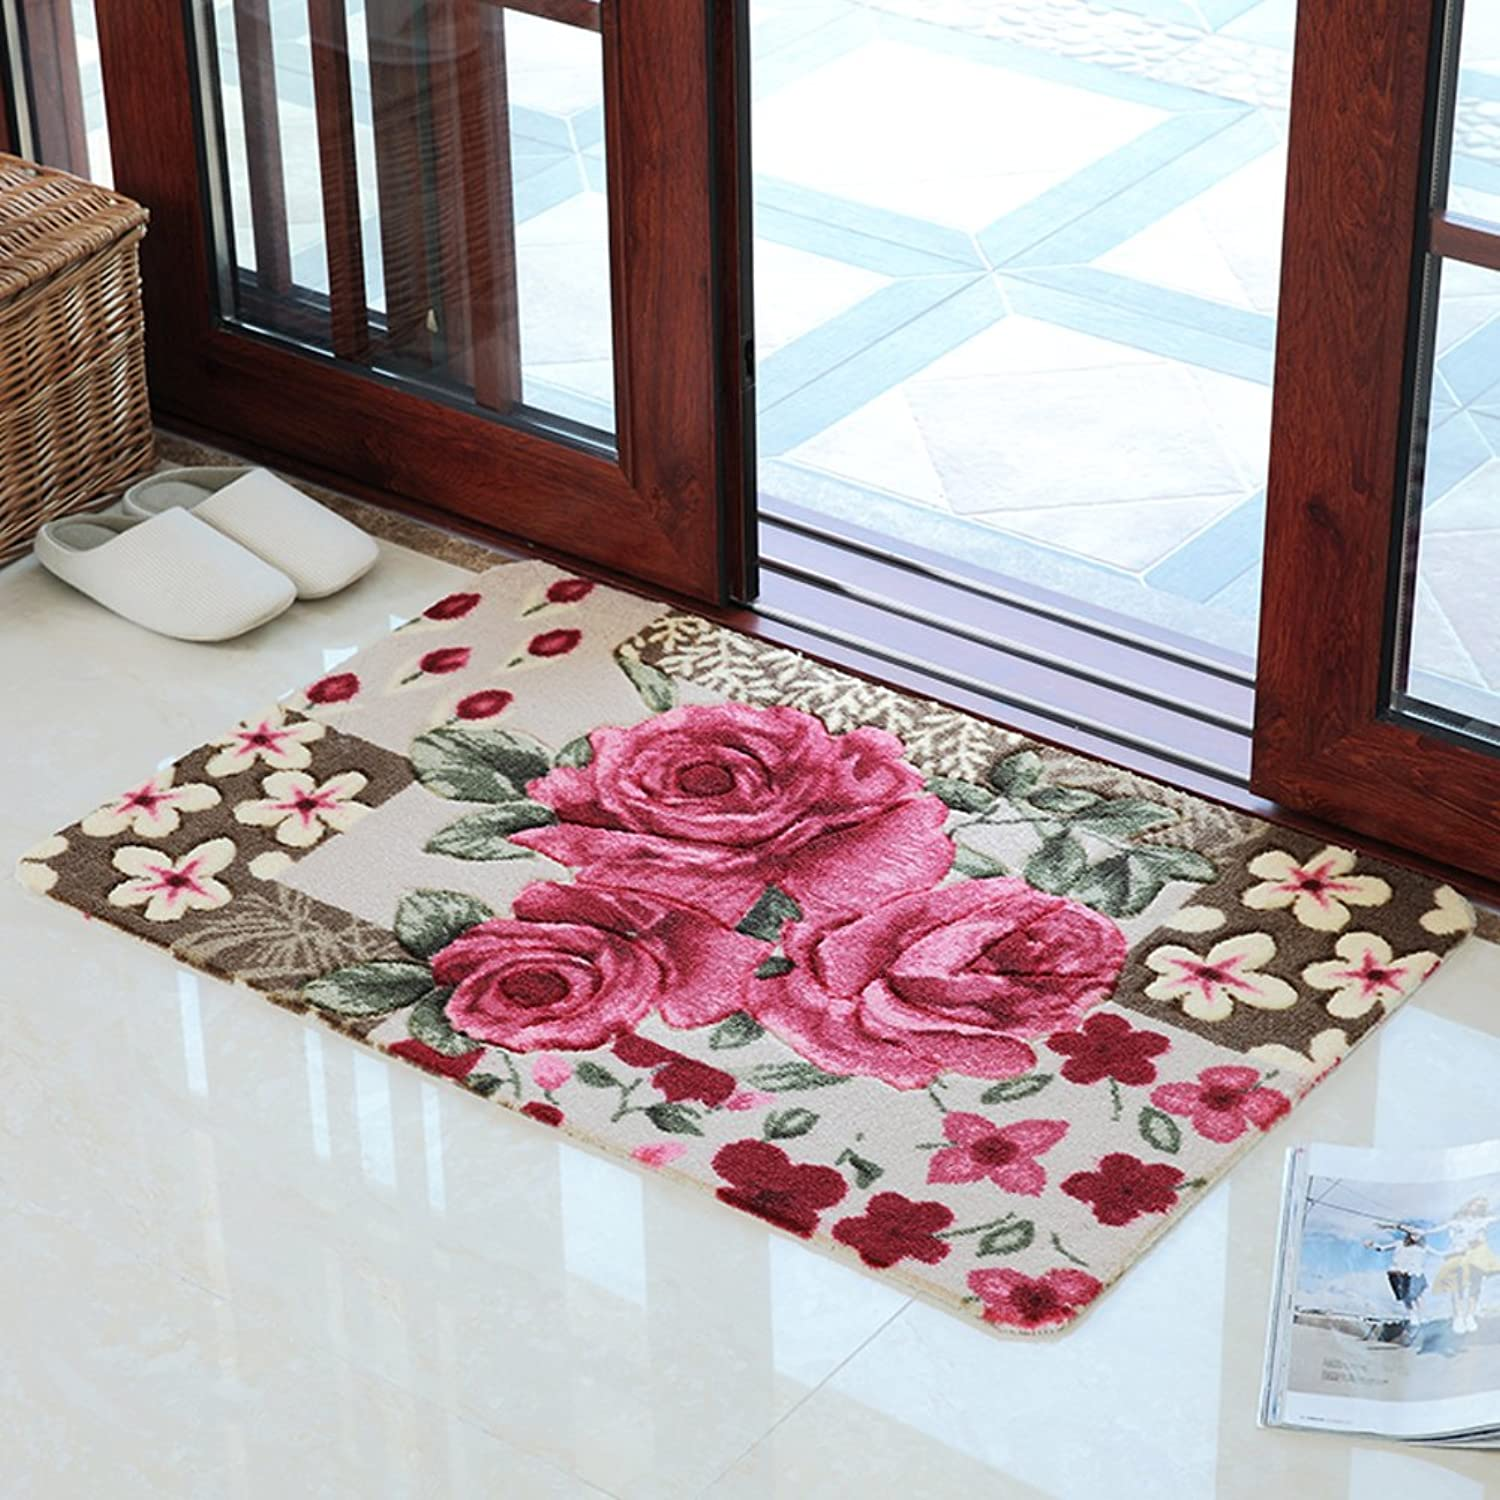 Indoor Mats Doormat Door,The Hall Mat Bedroom,Kitchen Floor Mats Bathroom,Water Absorption and Anti-skidding Mat-C 120x170cm(47x67inch)